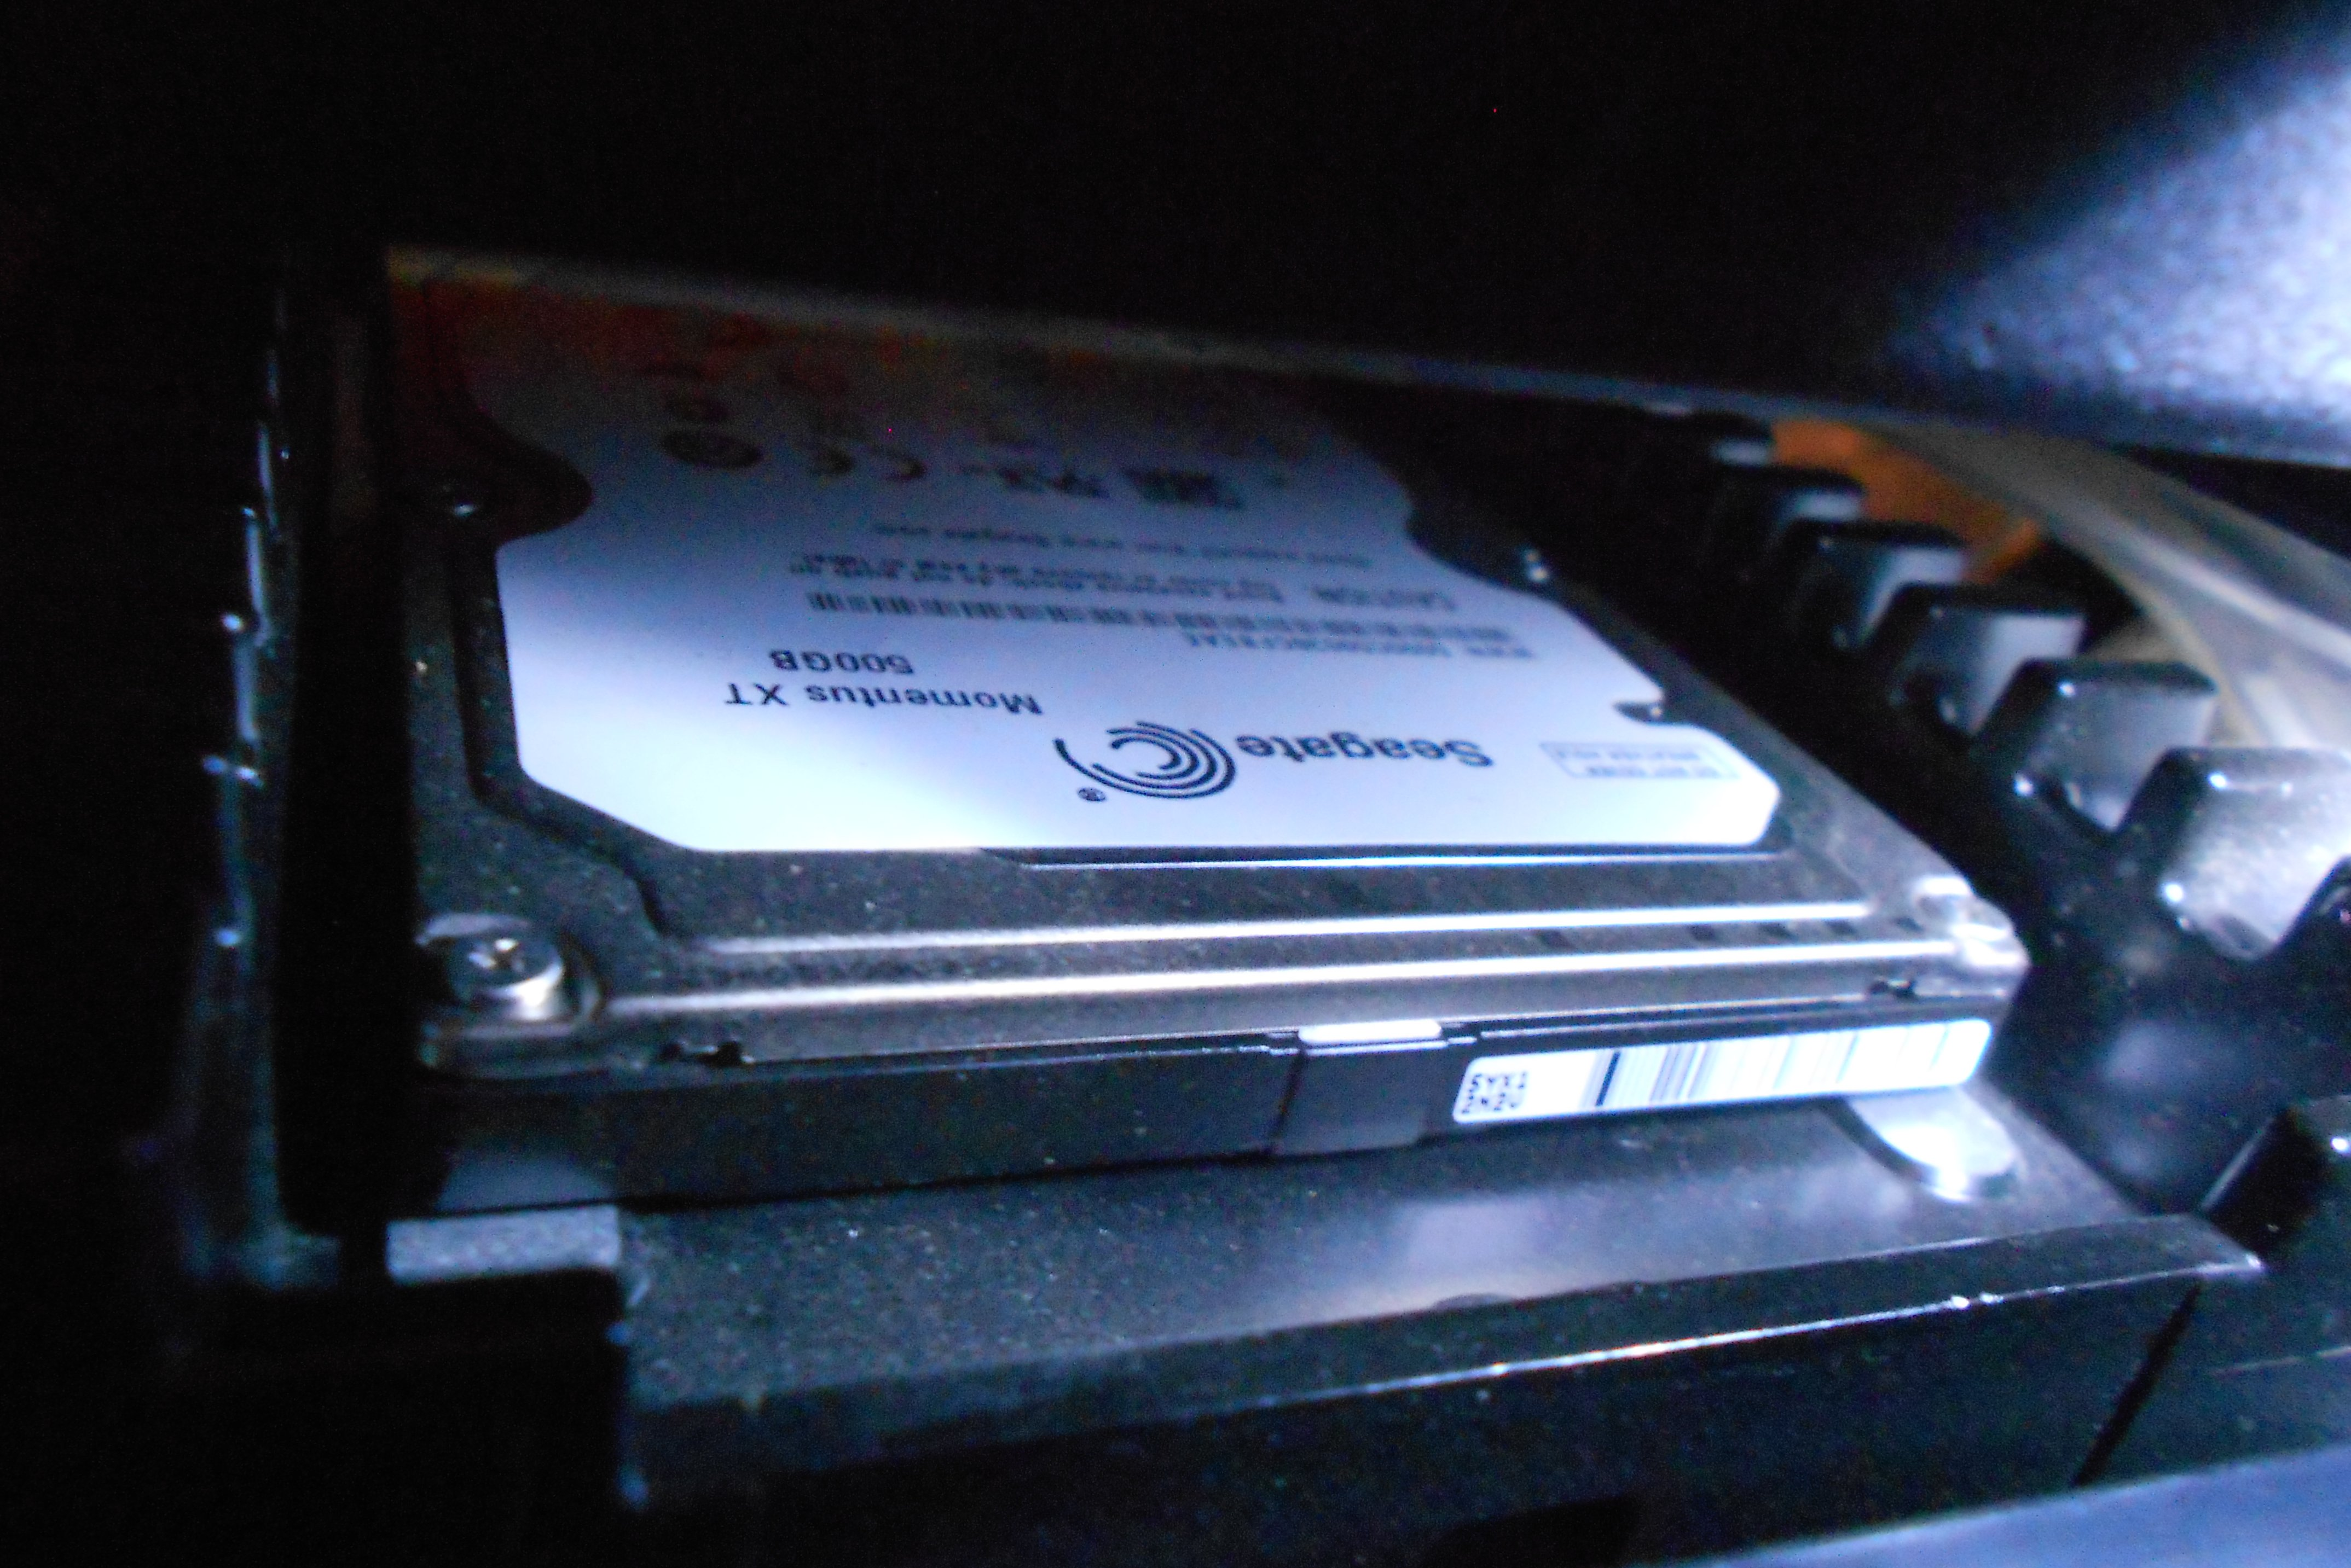 Seagate Momentus XT 500 GB hybrid HDD in a WD Raptor's Ice-Pack!